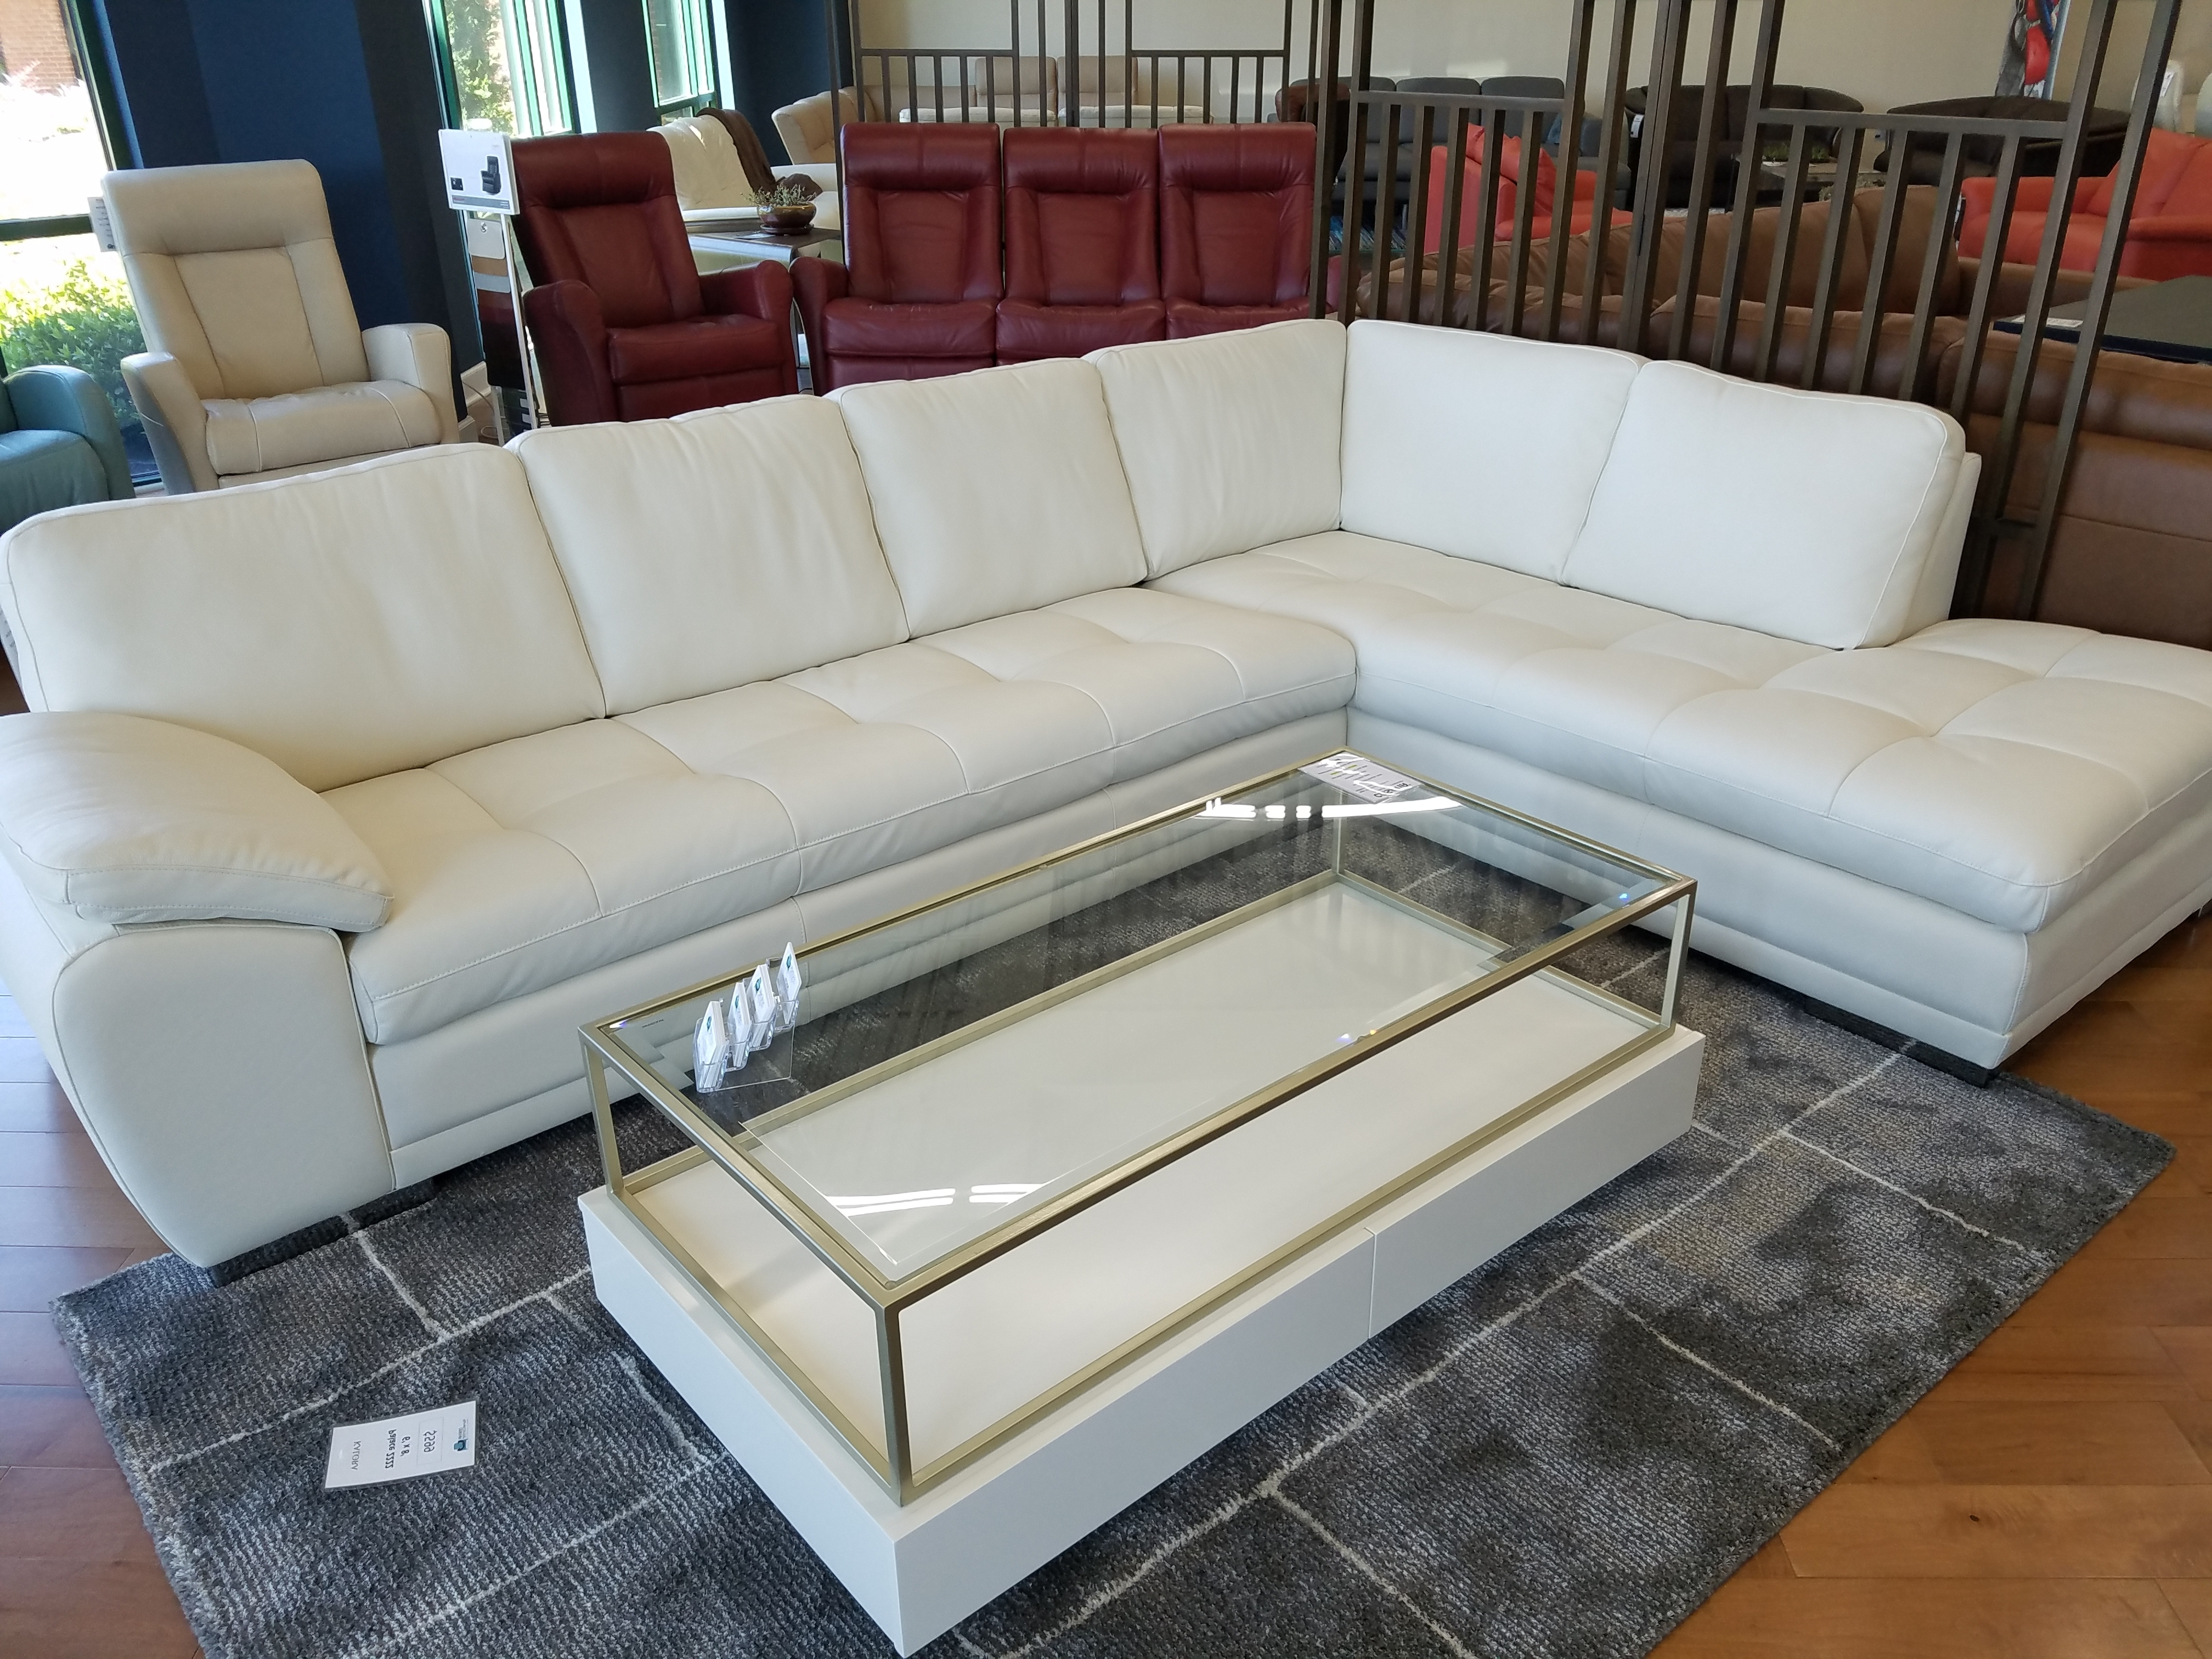 Palliser Miami Sectional Lhf Chaise Bumper And Rhf Sofa Leather With Regard To Fashionable Miami Sectional Sofas (View 11 of 15)